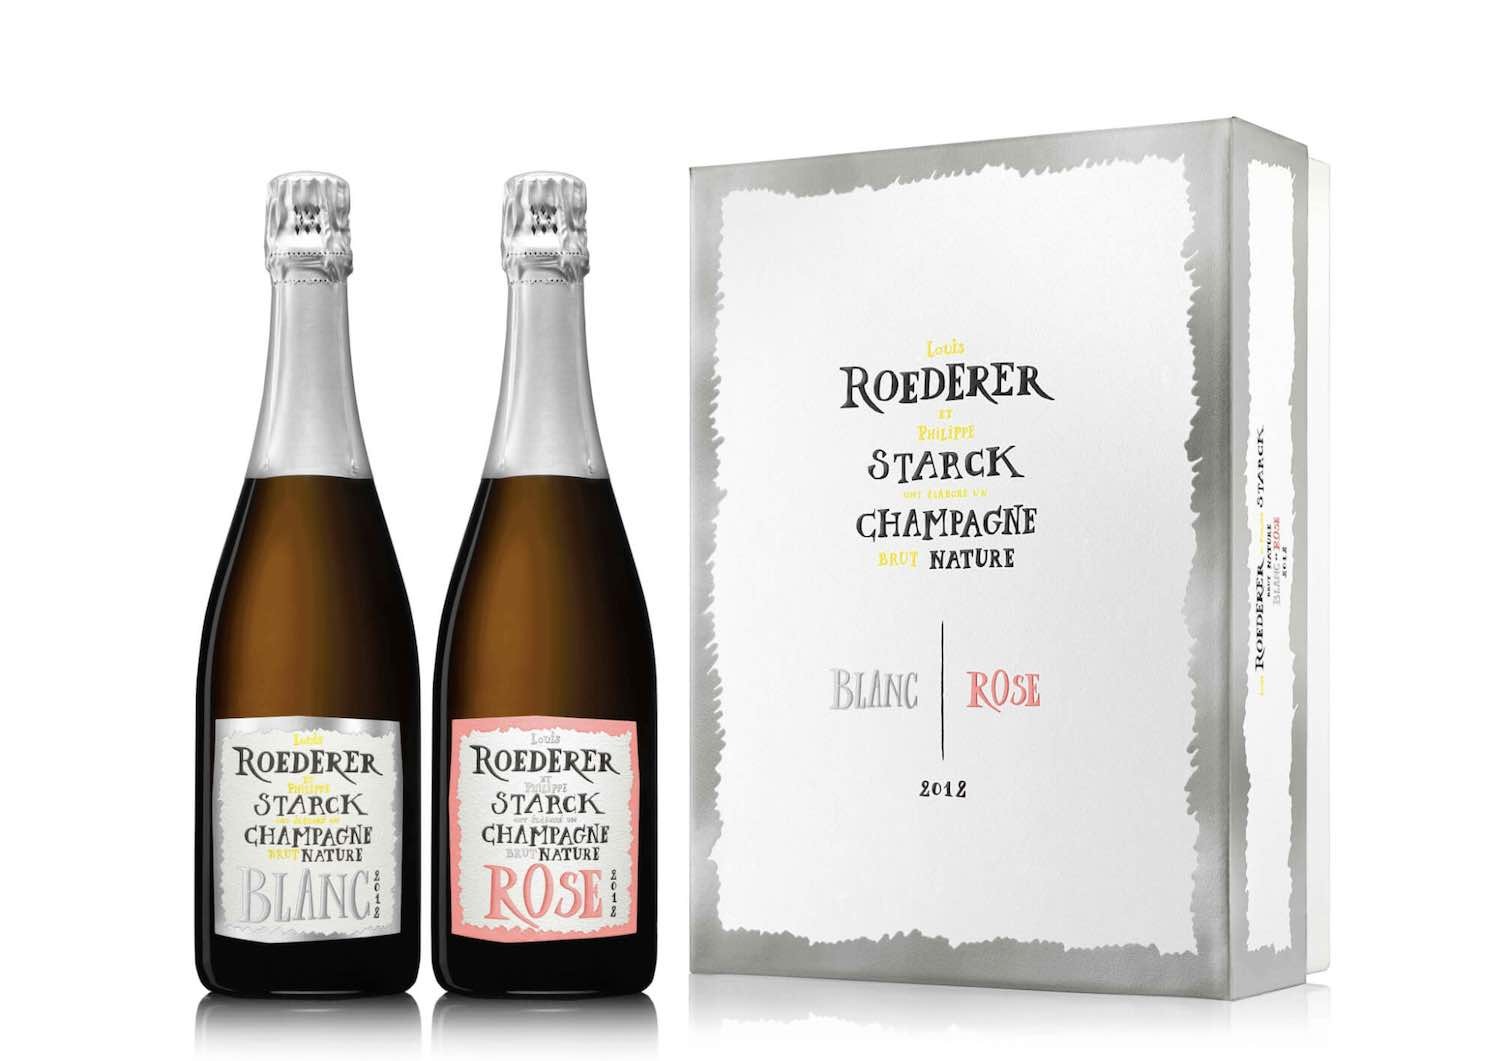 Brut by Philippe Stark for Louis Roederer Champagne House - Photo by Philipe Stark Network.